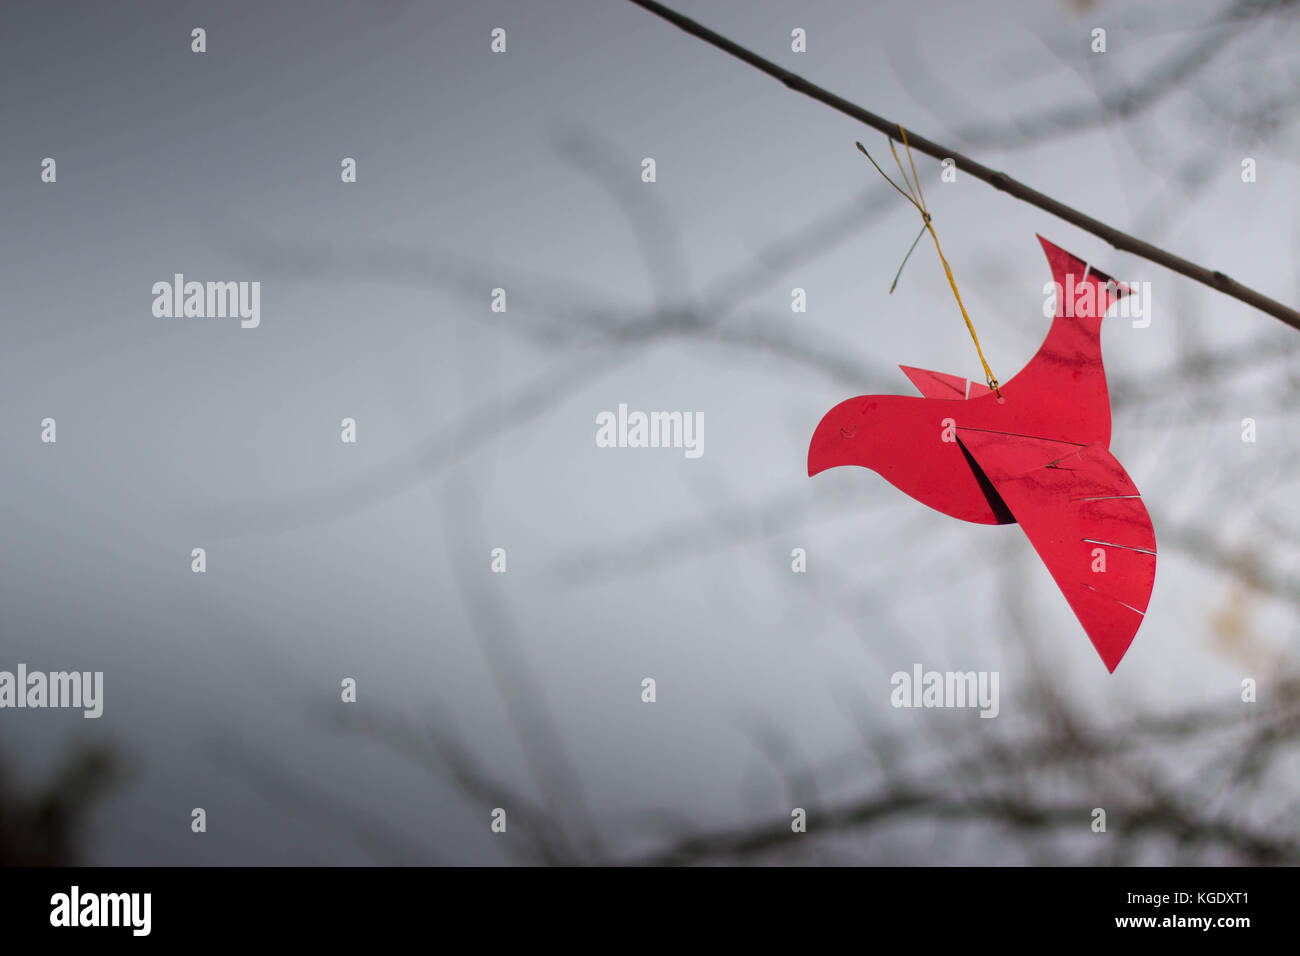 Shiny red bird ornament on a branch with cold winter sky in the background. Perfect wallpaper, with copyspace. - Stock Image